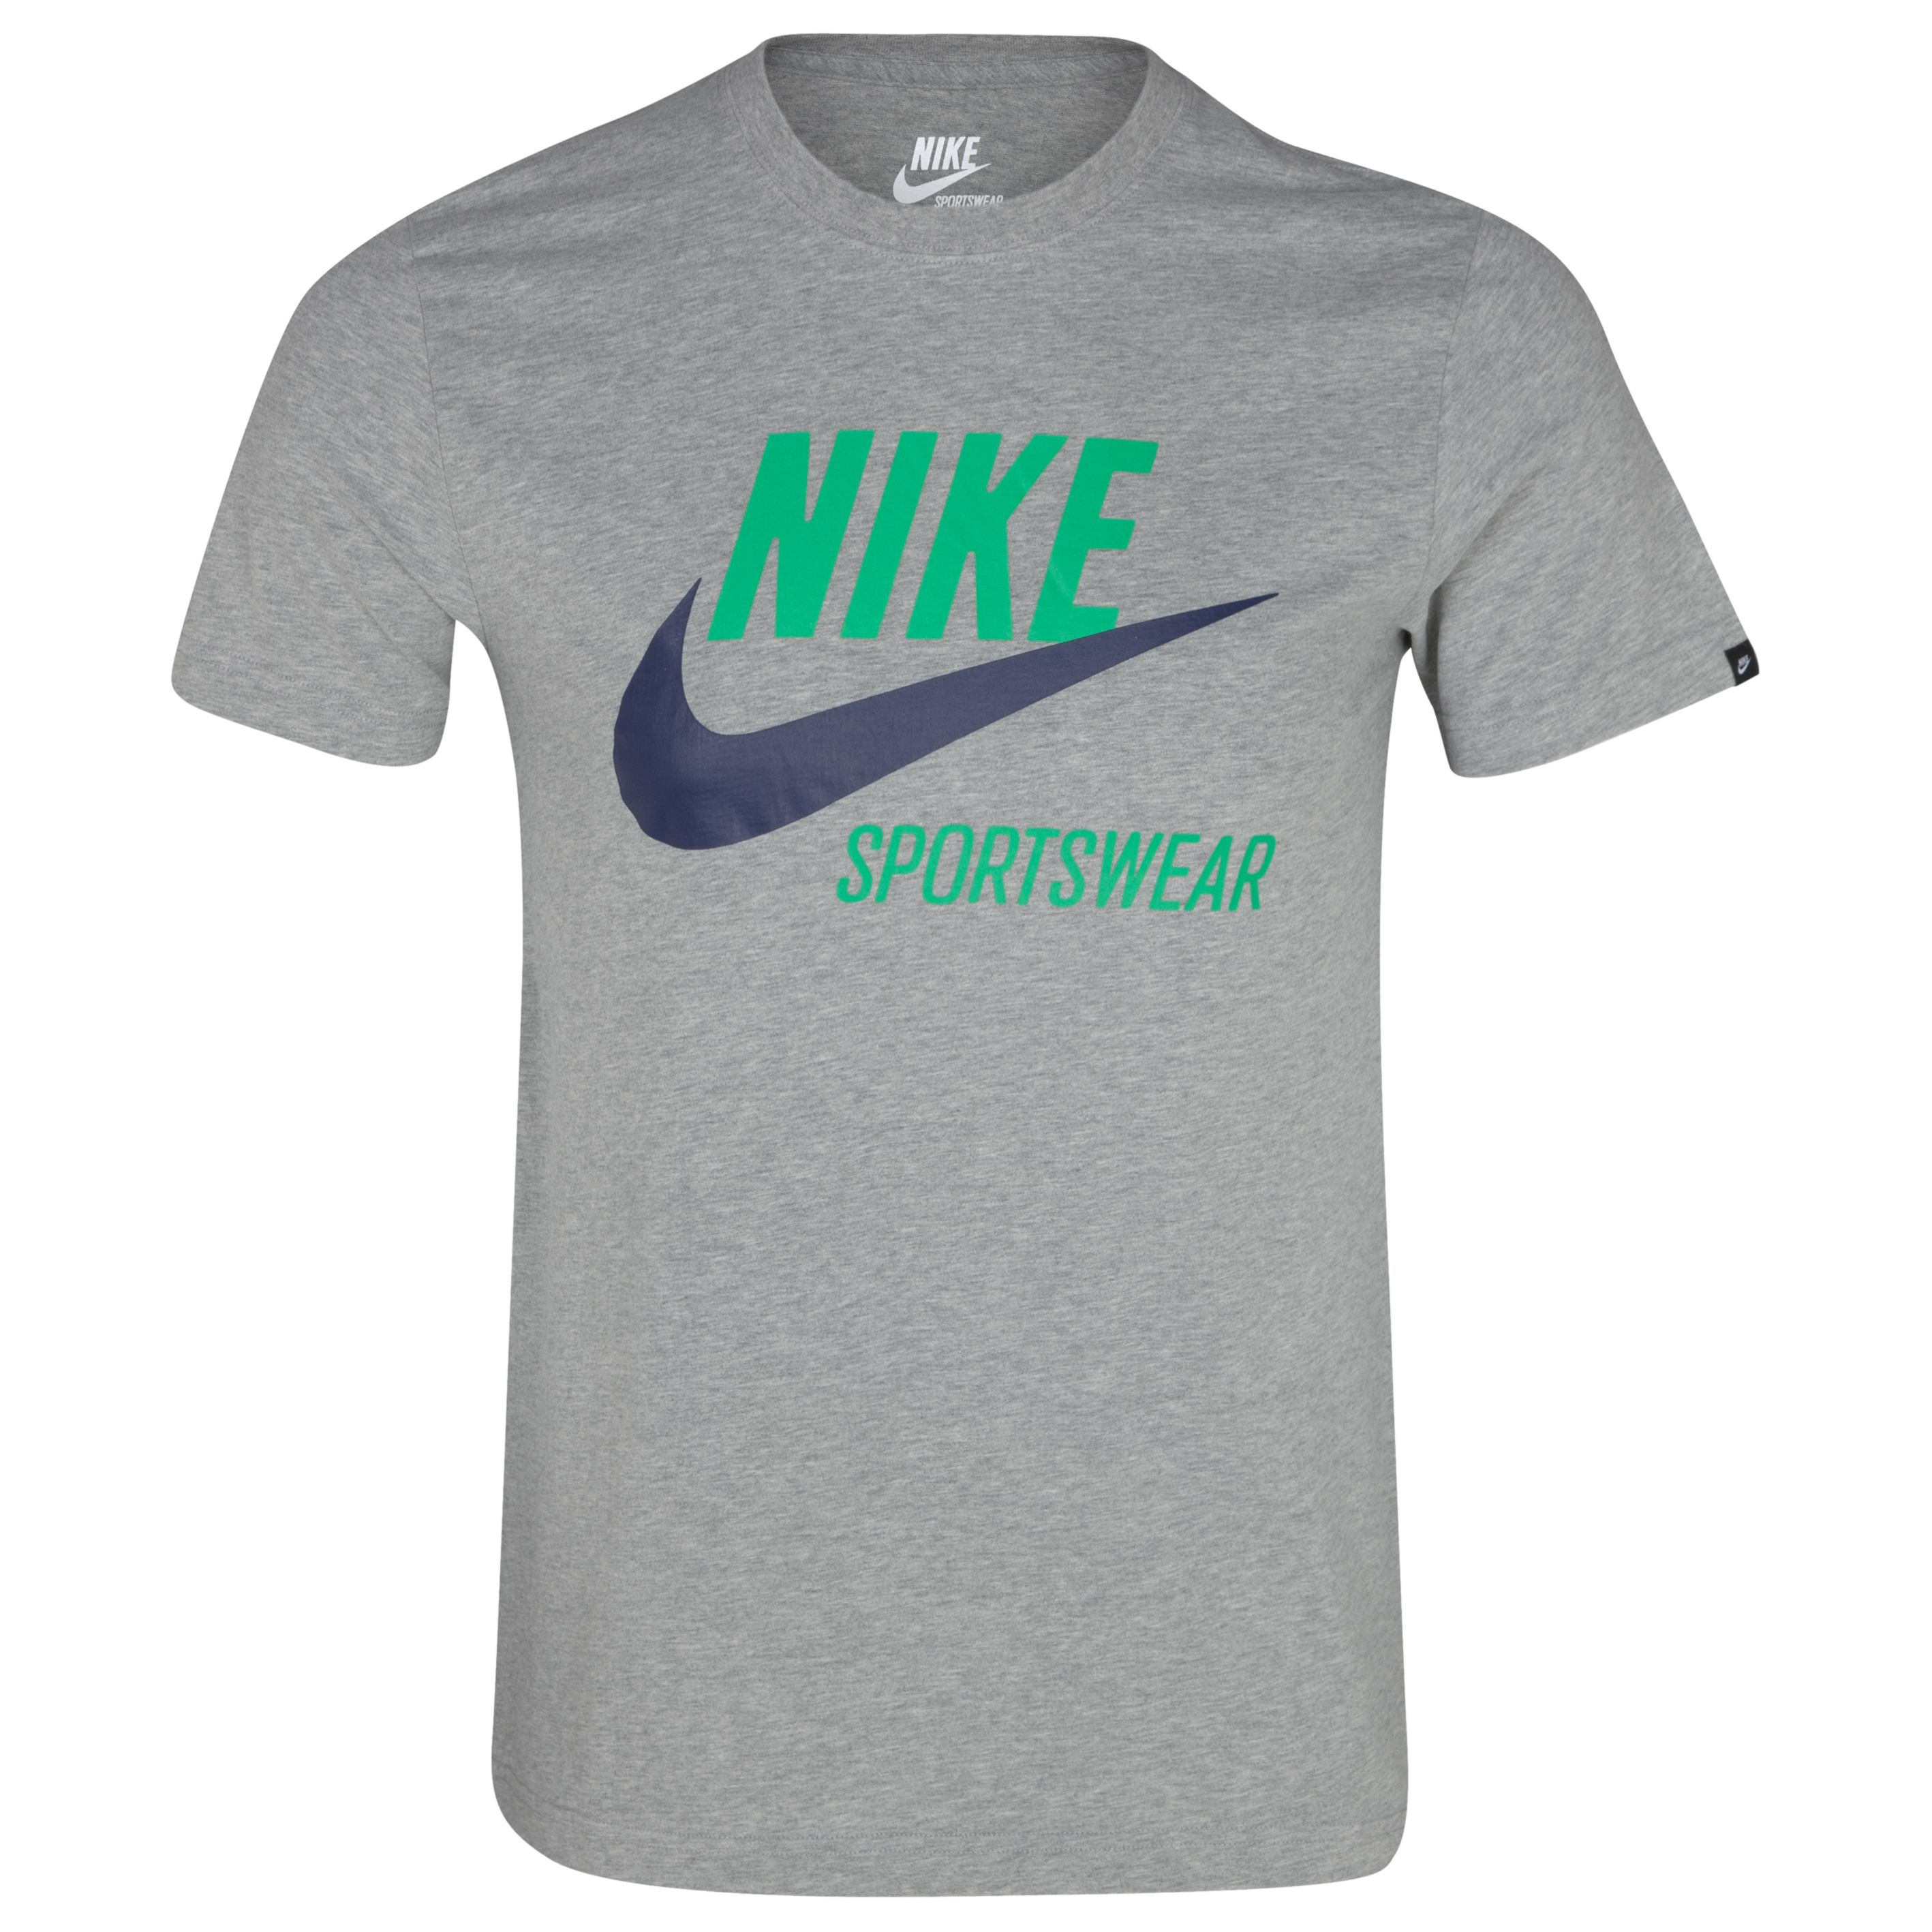 Nike Icon T-Shirt - Dark Grey Heather/Gym Green